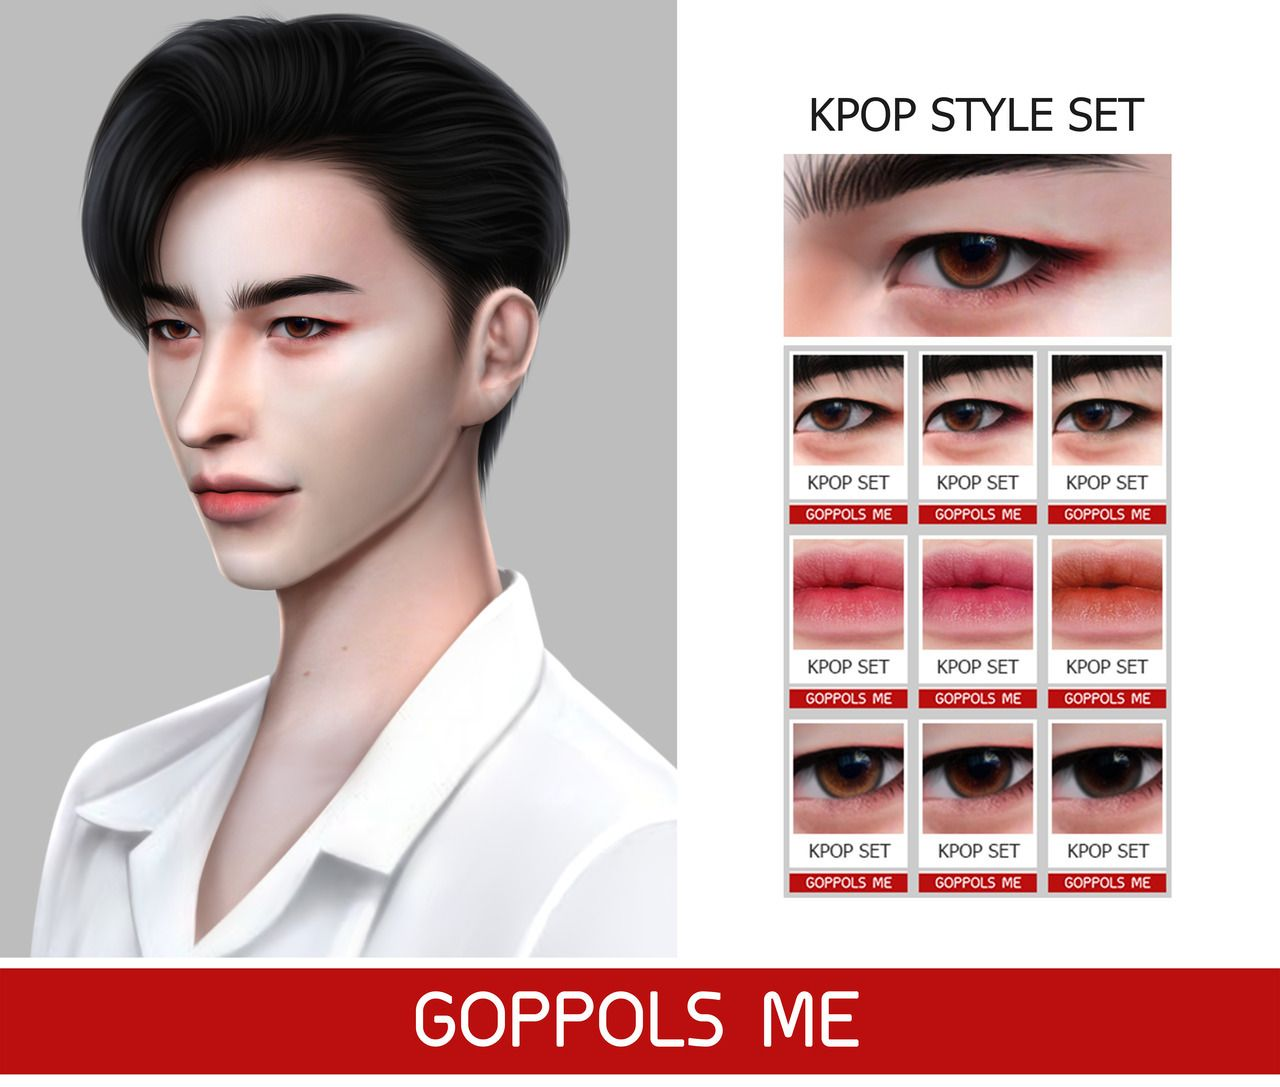 Goppols Me Gpme Kpop Style Set Download Hq Mod Compatible Sims 4 Hair Male Sims Hair The Sims 4 Skin